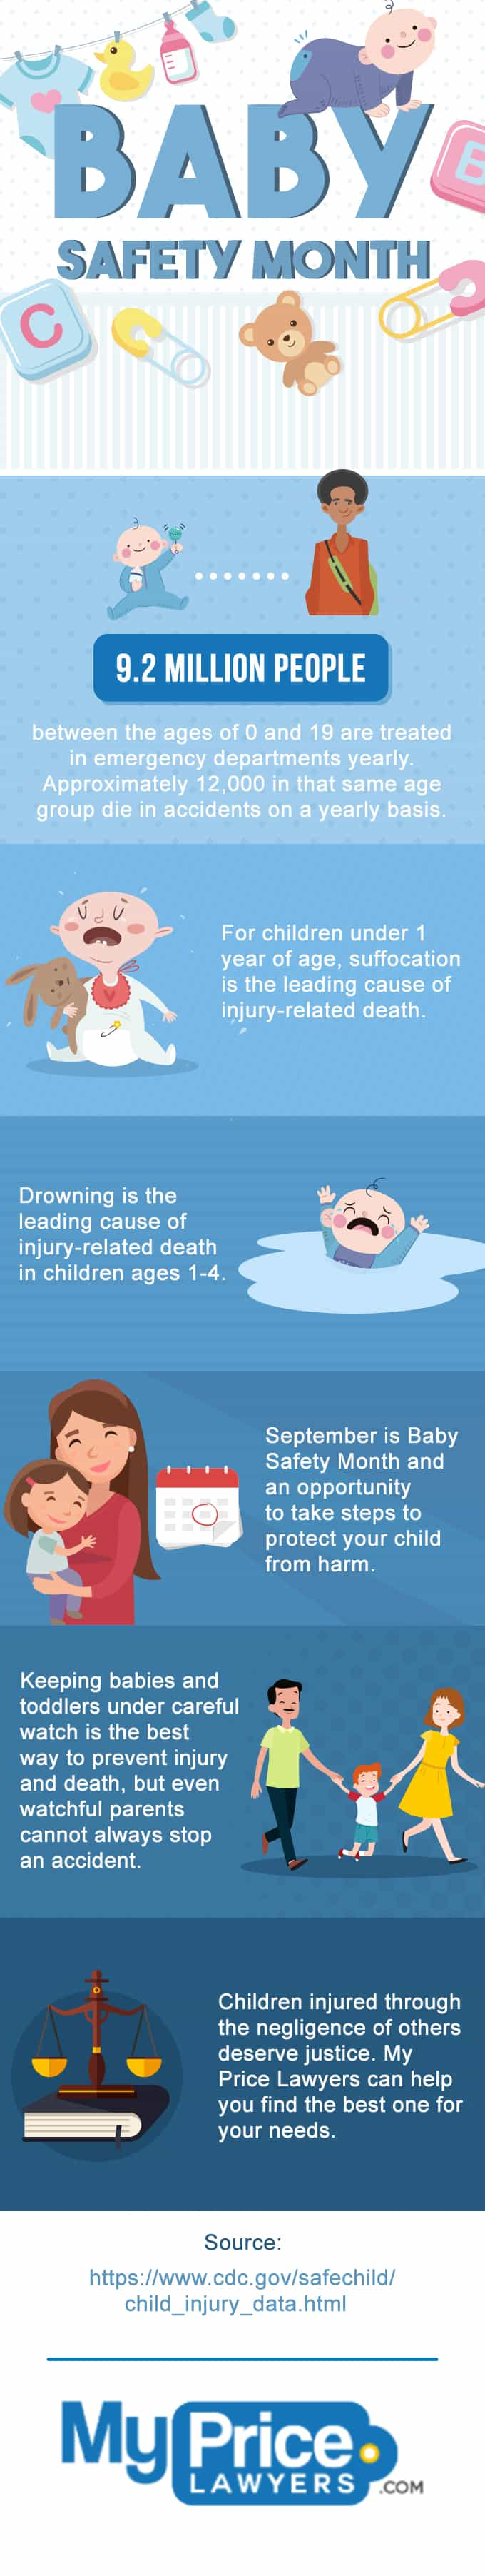 Baby Safety Month Infographic